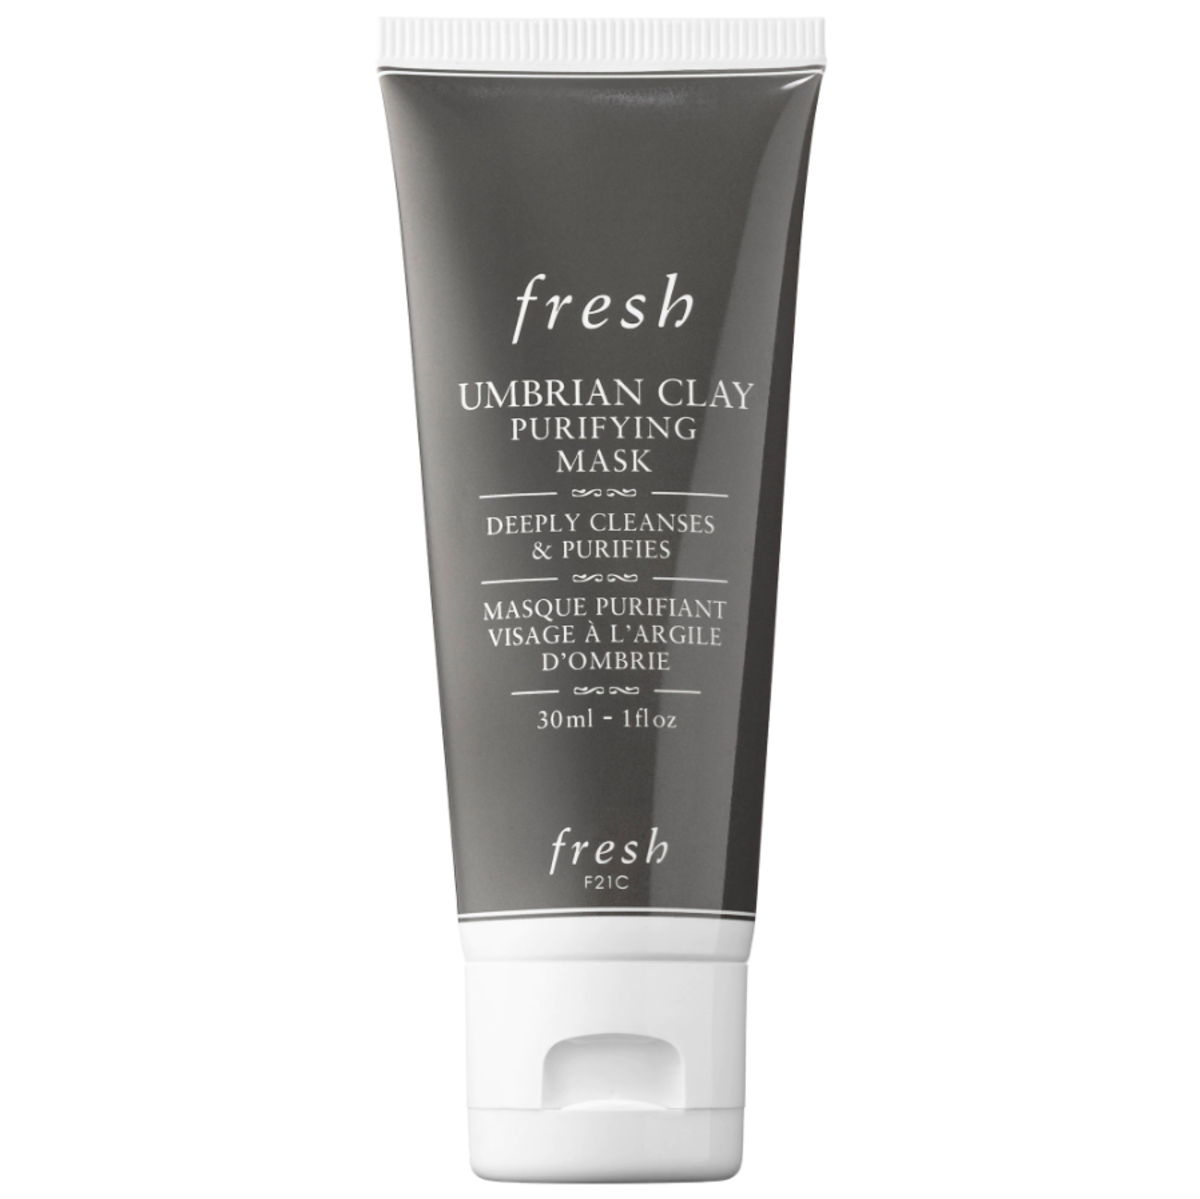 Fresh Umbrian Clay Pore Purifying Face Mask, $58, available here.